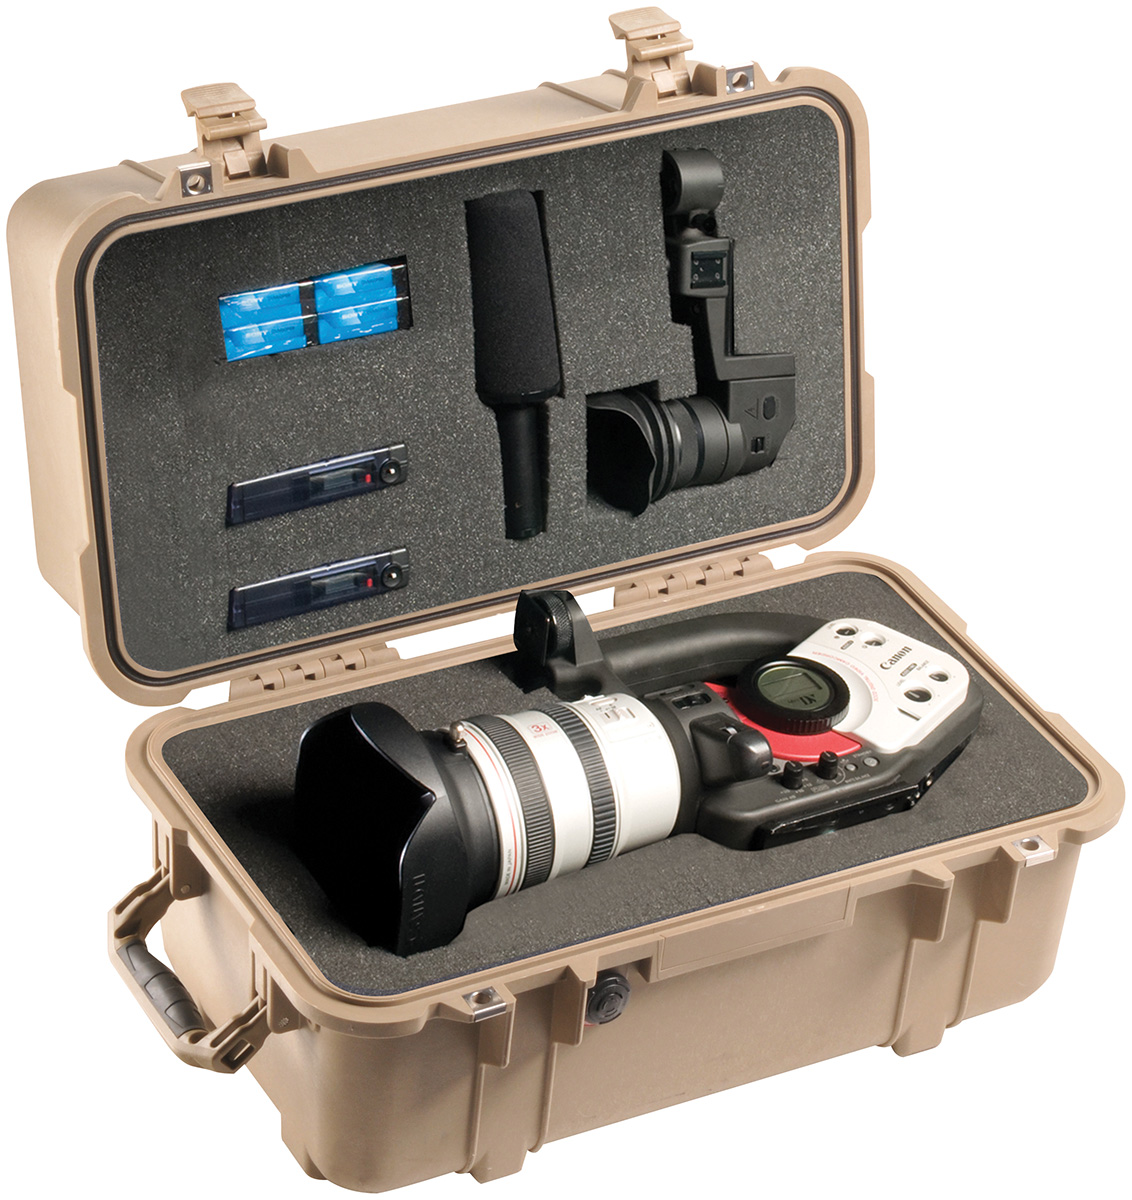 pelican peli products 1460 hard canon video camera protection case